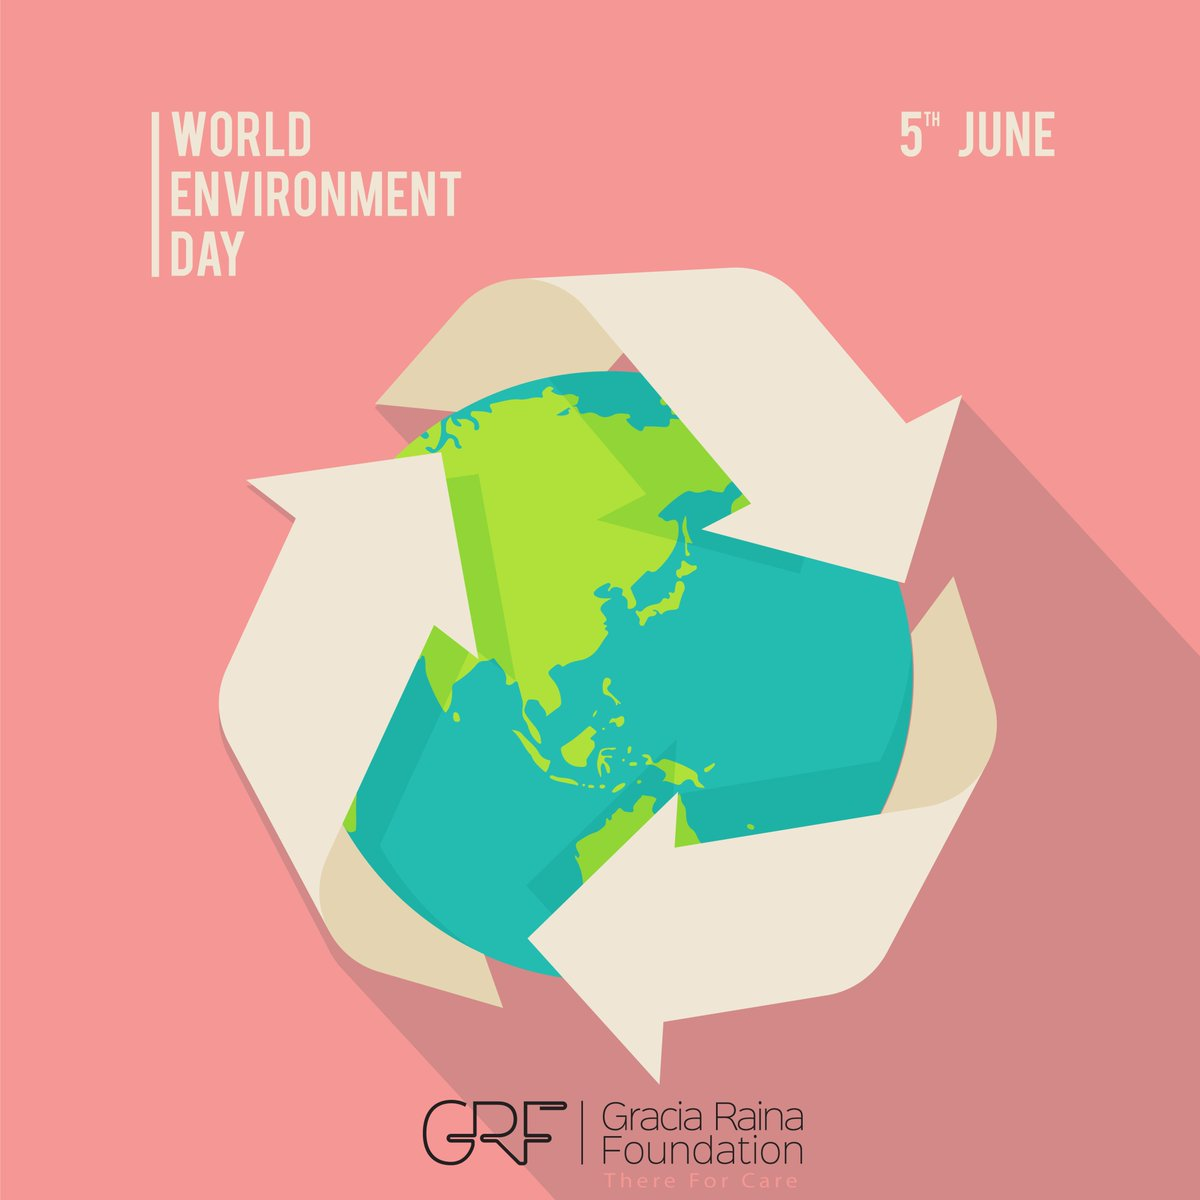 If each and every one of us does at least one green good deed daily we can become active agents of sustainable and equitable development #WorldEnvironmentDay